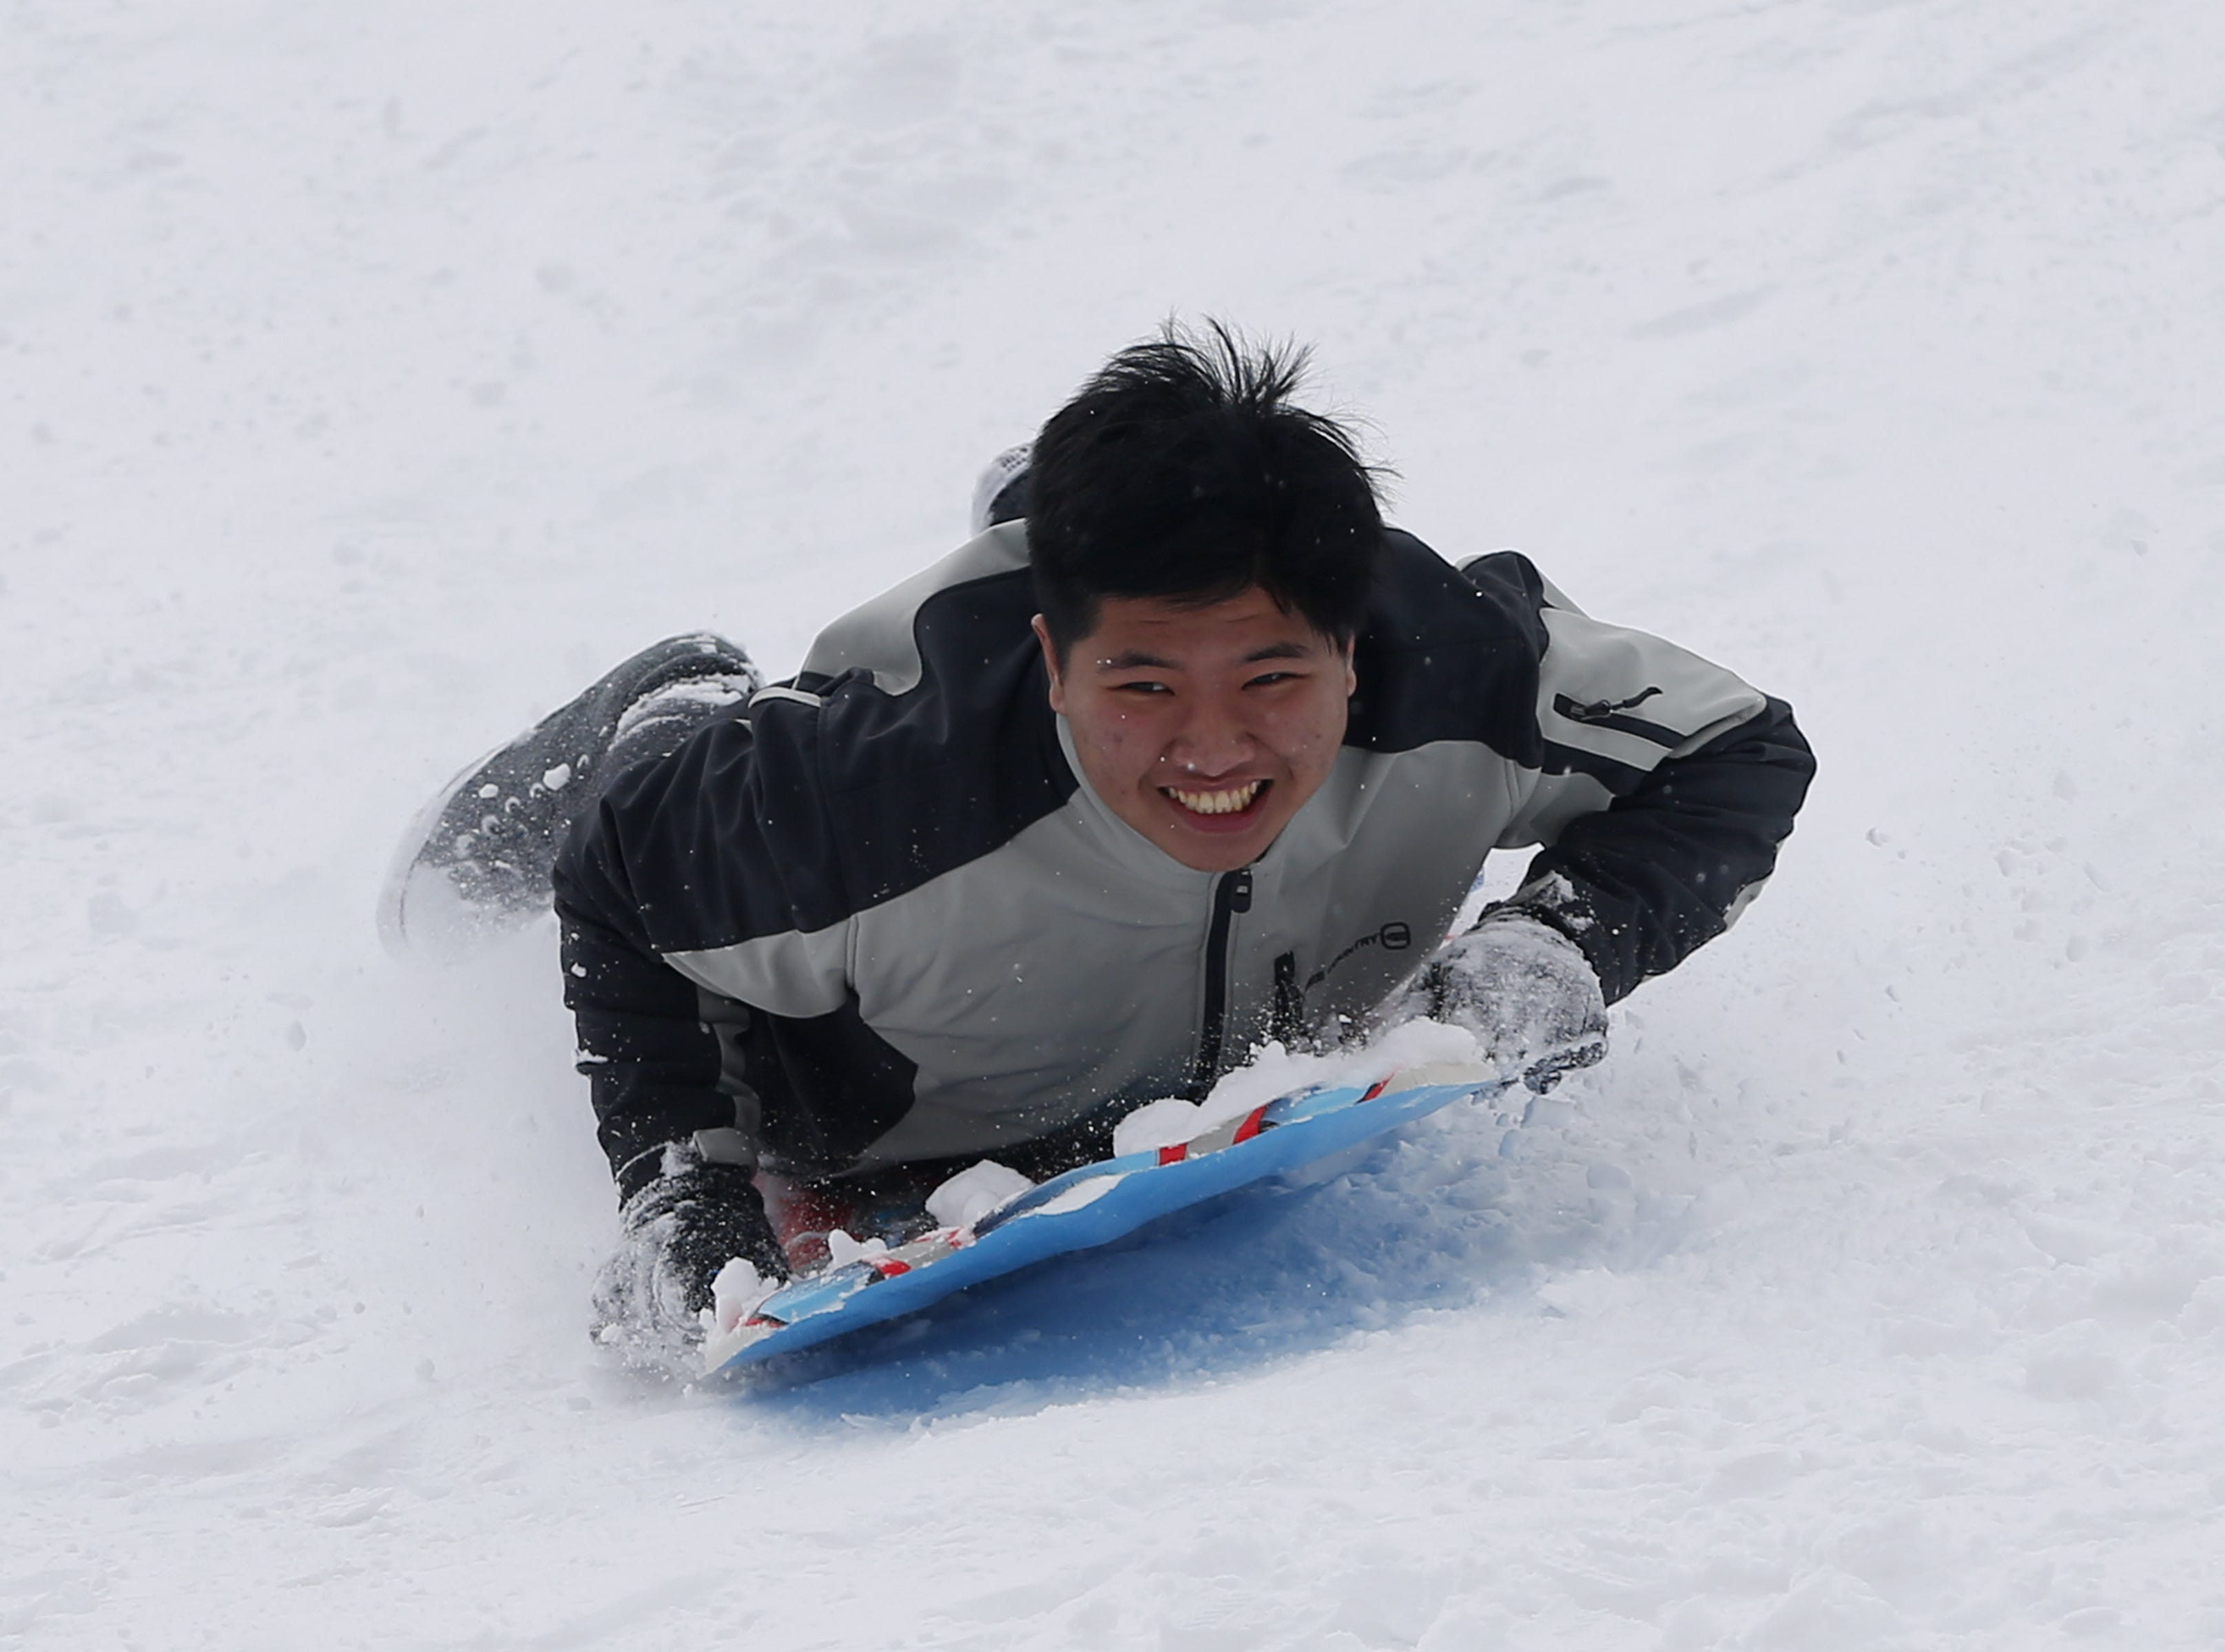 Khoi Bo, 16, slides down a hill in Flagstaff Feb. 18, 2019.